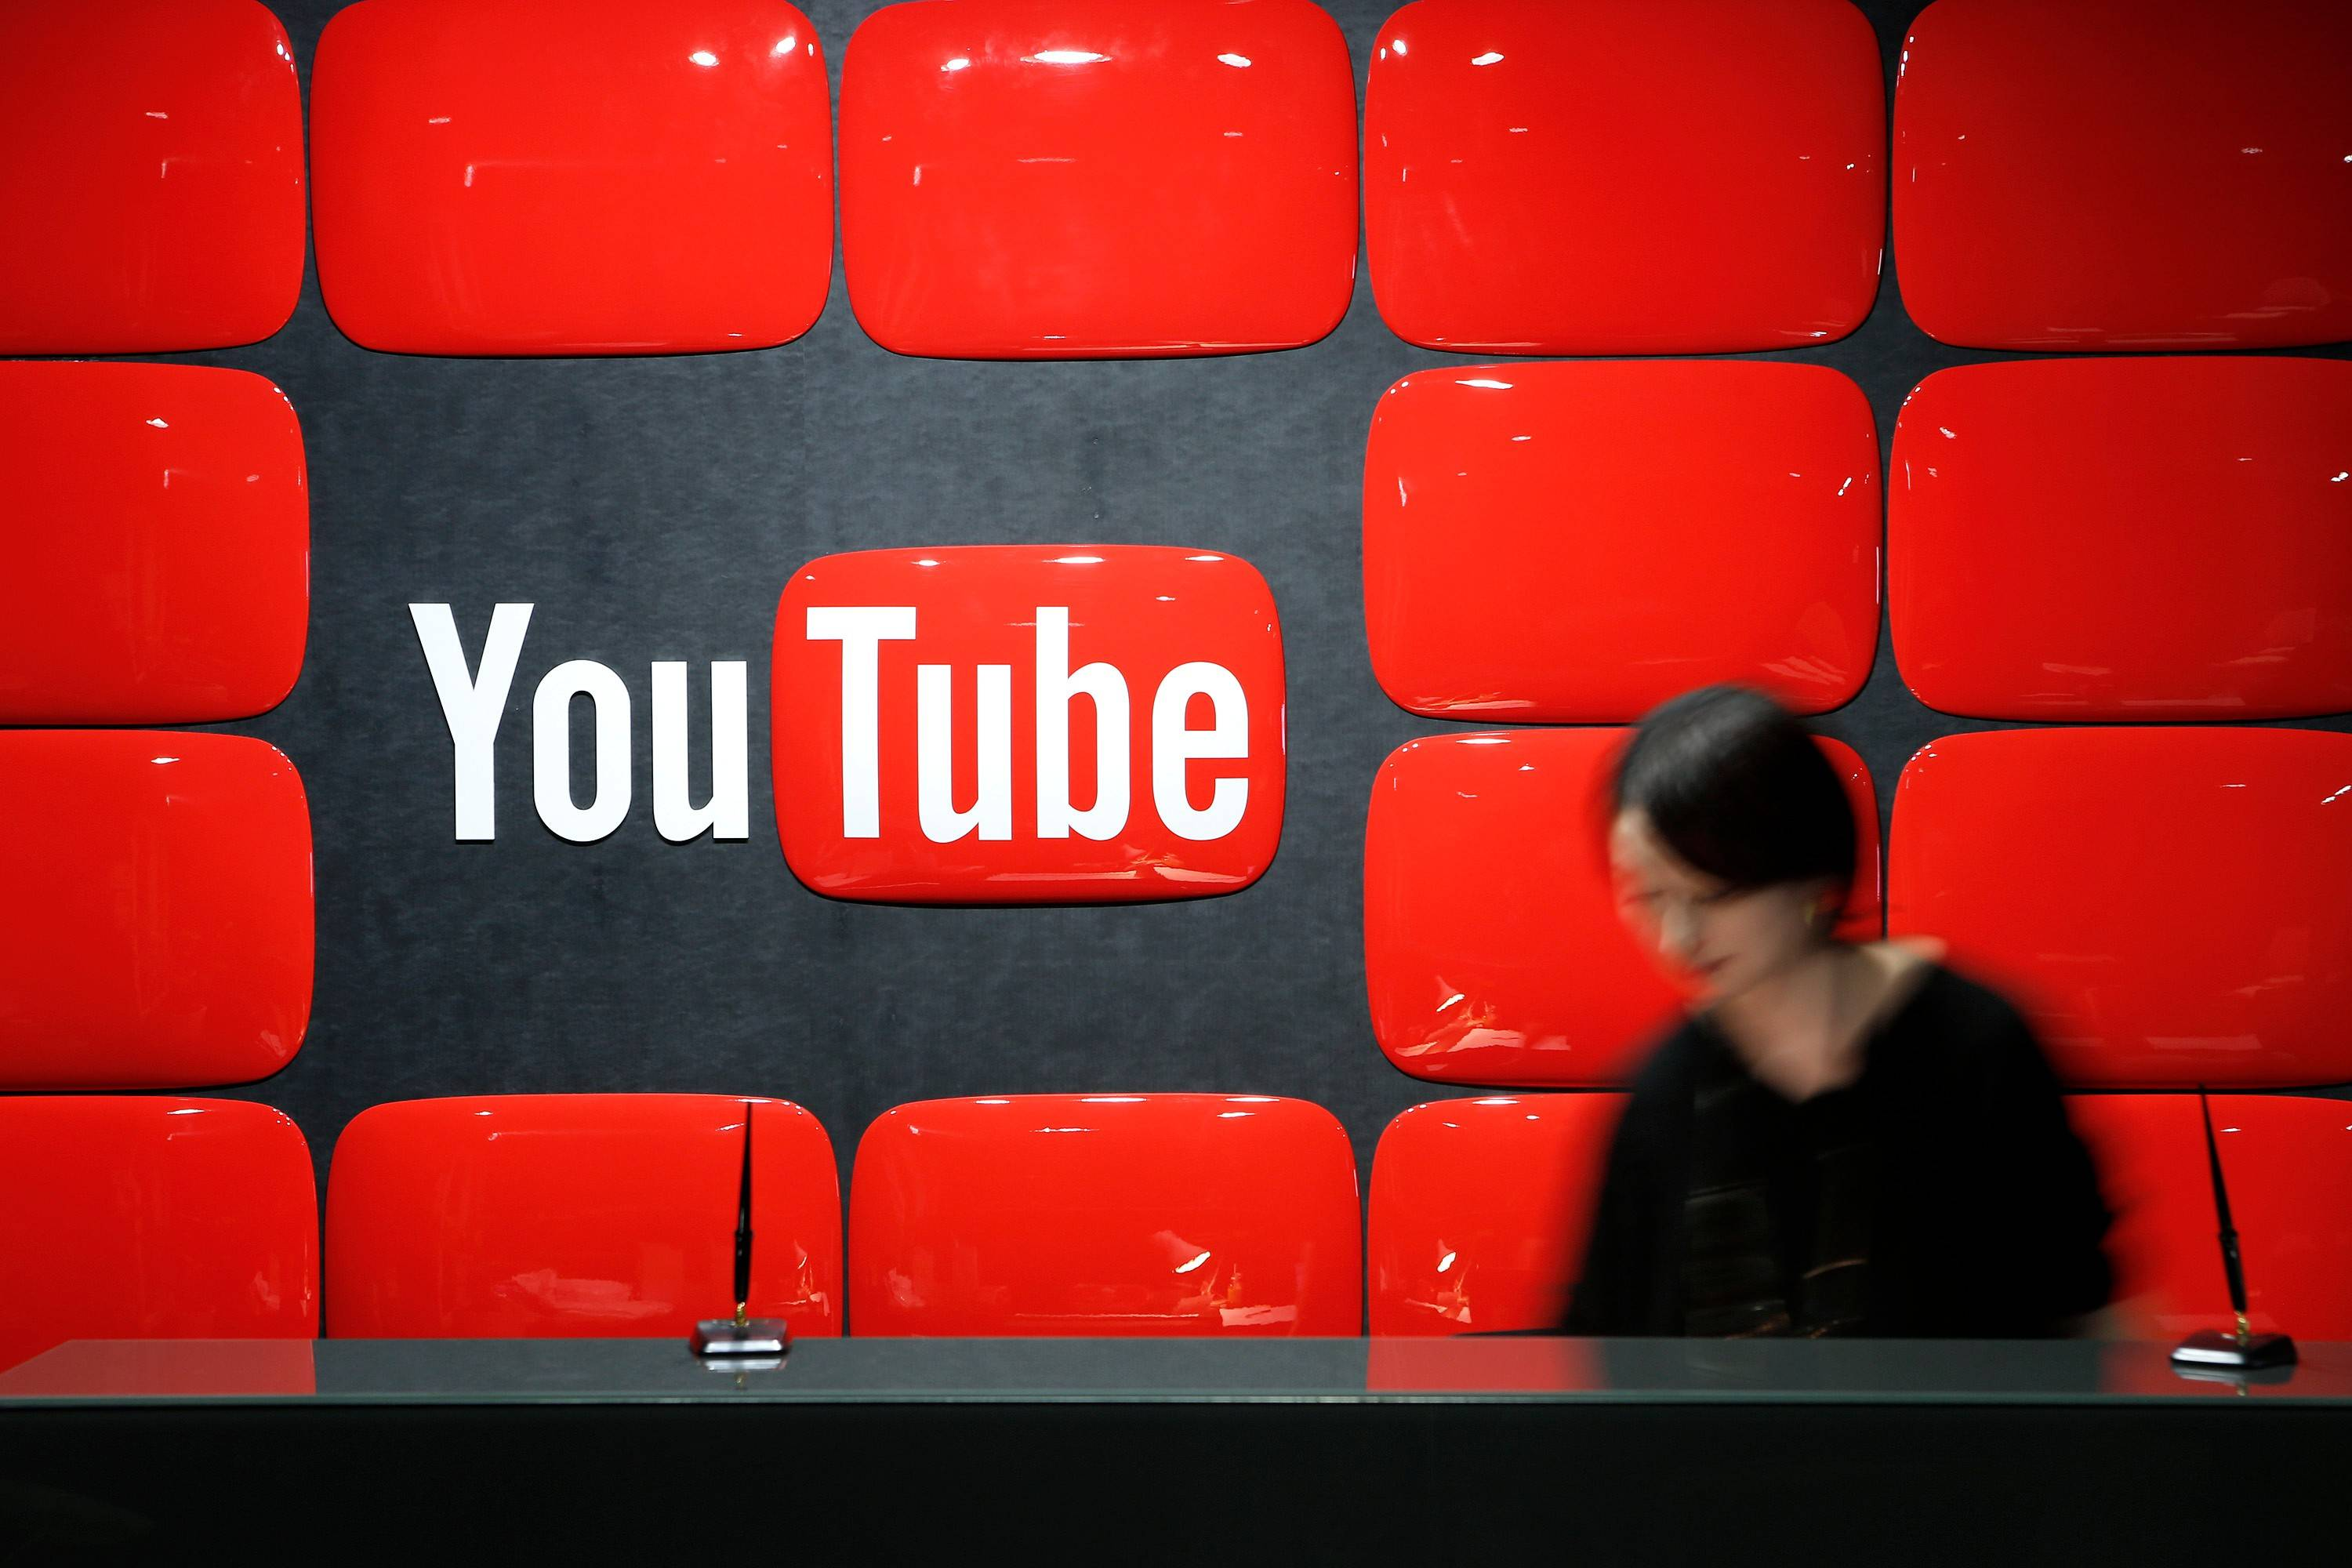 YouTube will launch a new subscription music service, the company acknowledged Tuesday after being dragged into a public dispute over royalties that will result in the blockade of some independent artists' music videos.